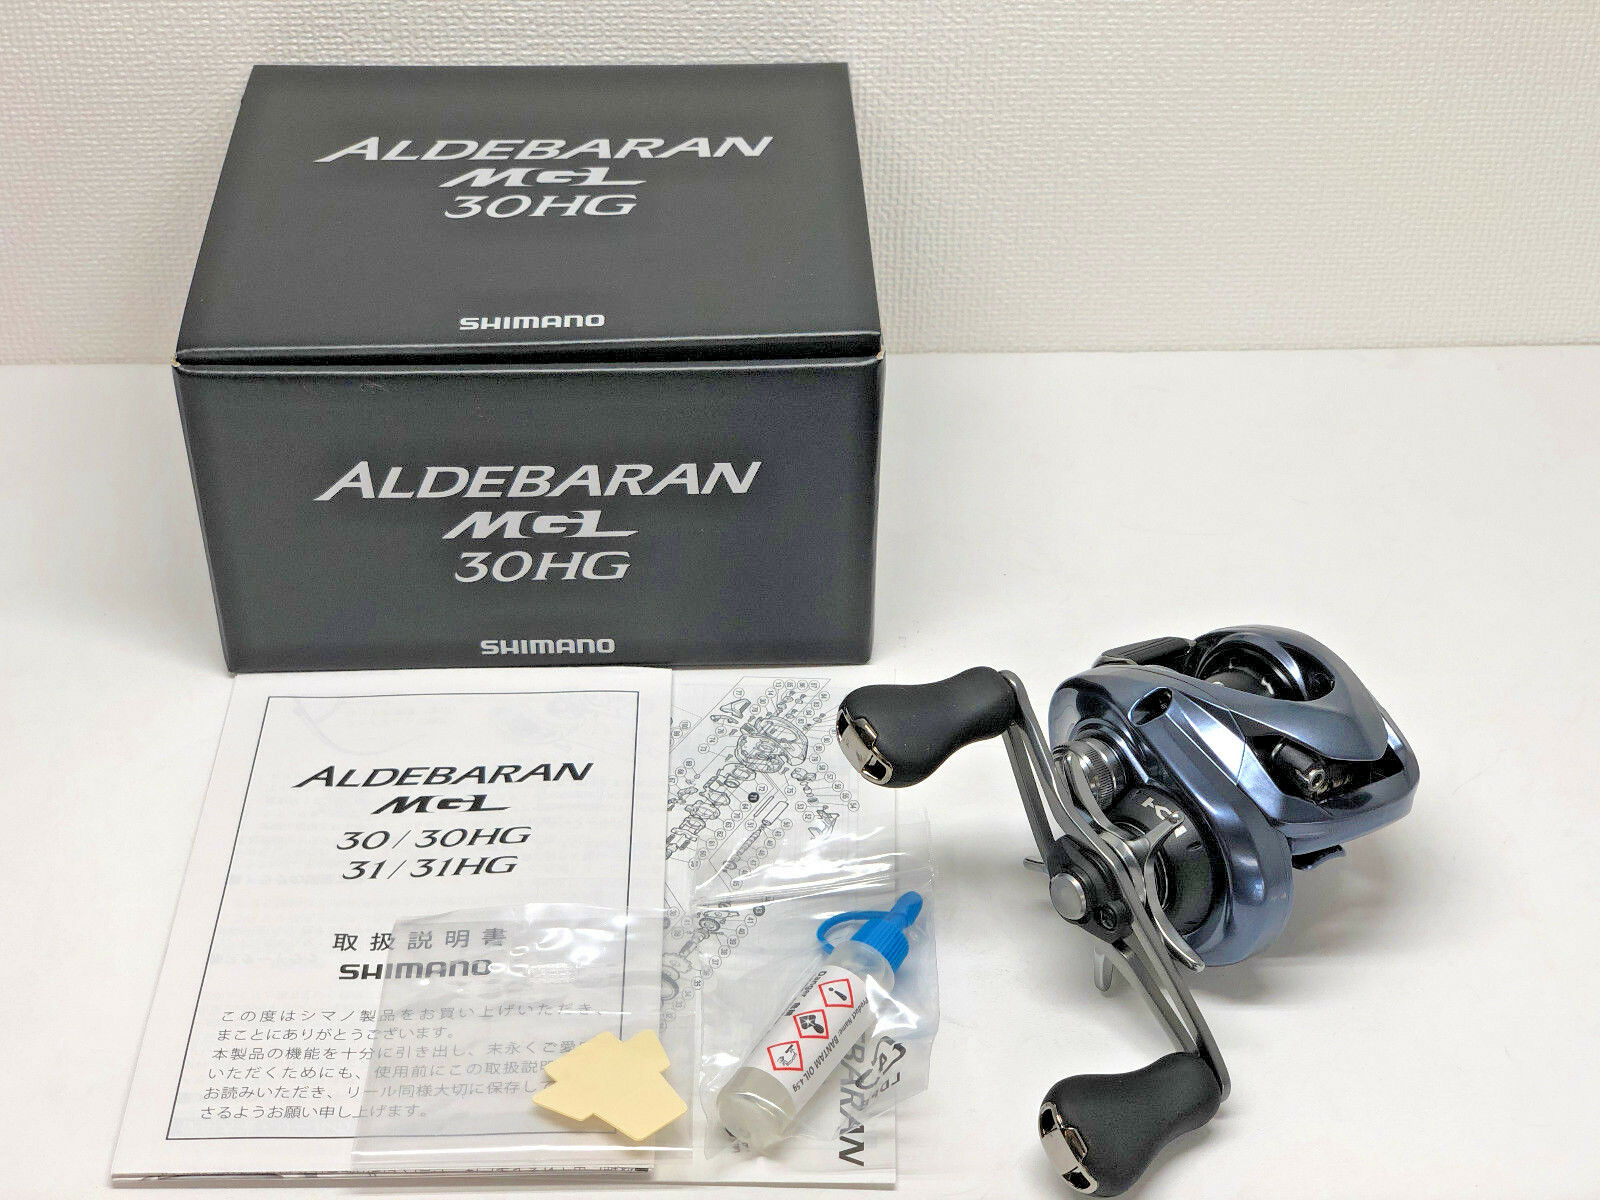 SHIMANO 18 ALDEBARAN MGL 30HG RIGHT  - Free Shipping from Japan